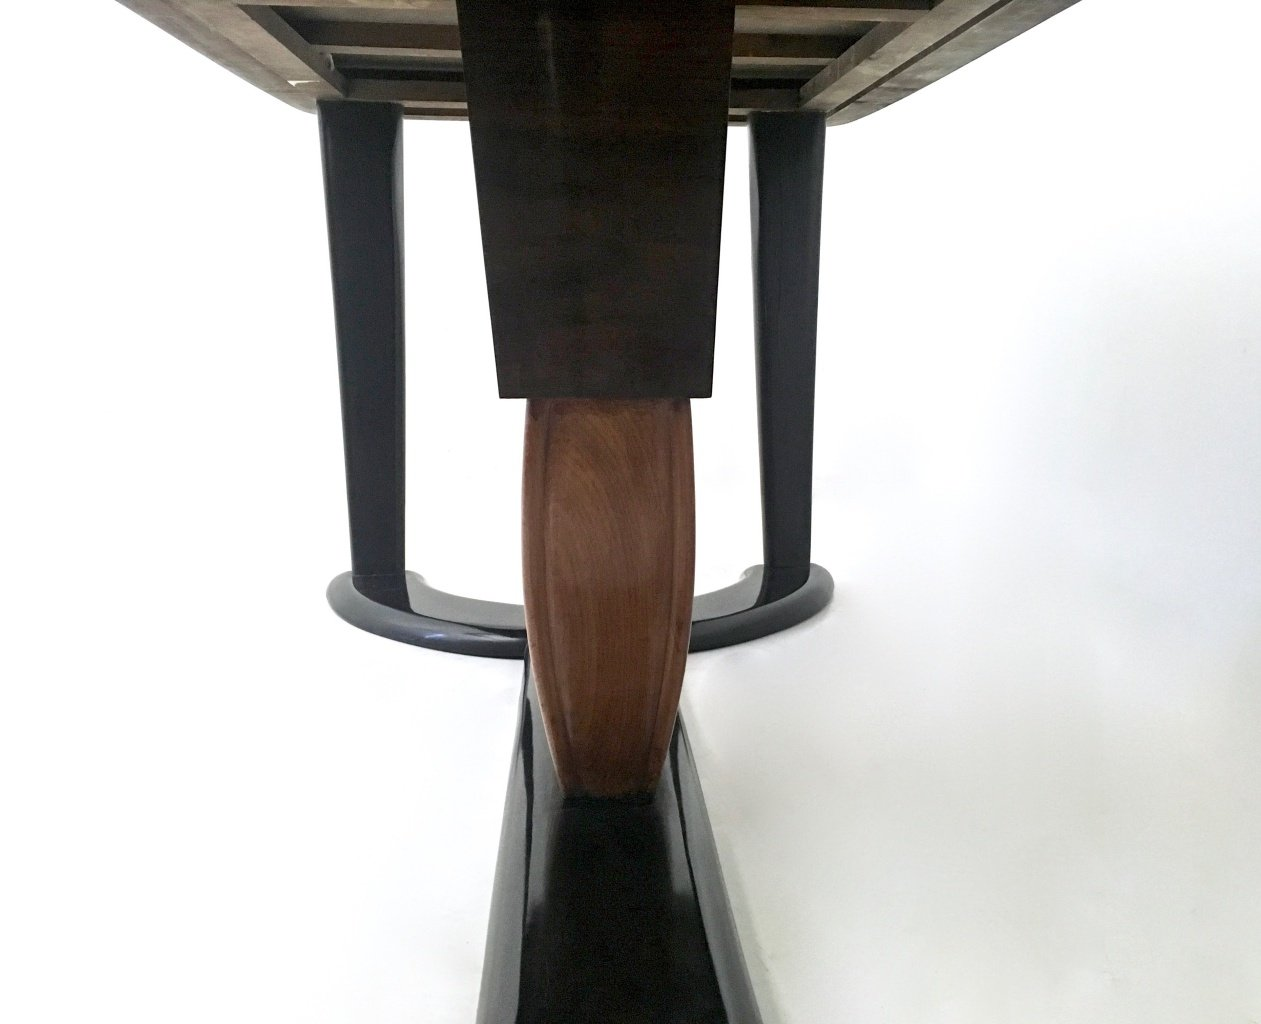 Mahogany and Ebonized Wood Dining Table with Black Opaline  : mahogany and ebonized wood dining table with black opaline glass top 1940s 6 from www.pamono.com size 1261 x 1024 jpeg 209kB